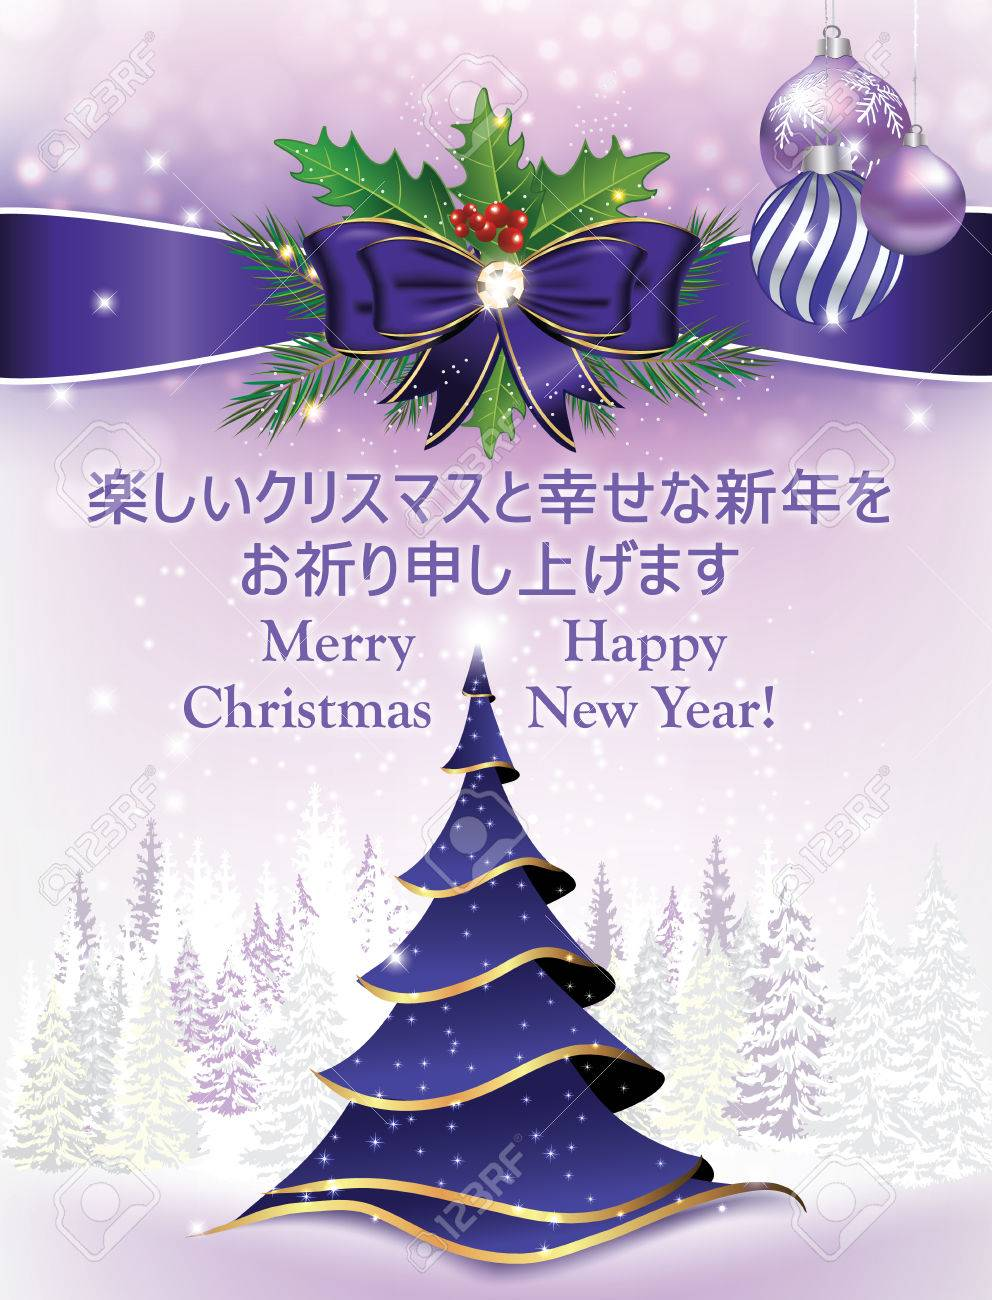 japanese greeting card we wish you all merry christmas and happy new year